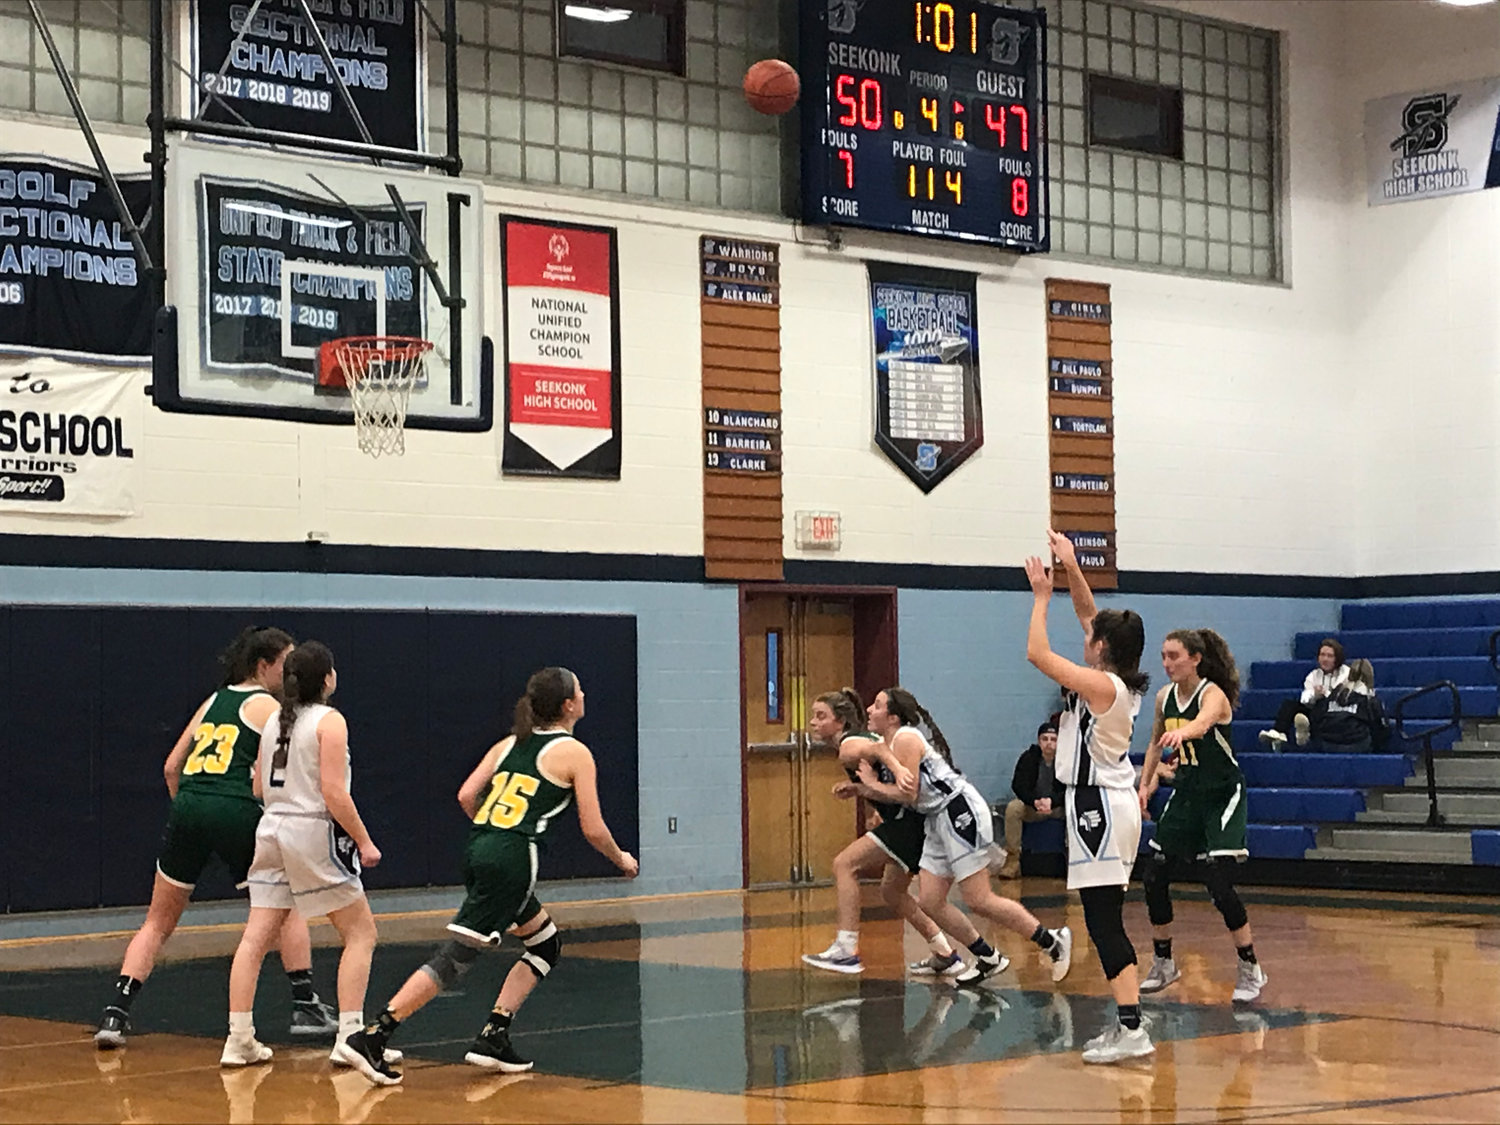 Seekonk senior guard Mia DiBiase shoot a free throw late in the fourth quarter of Tuesday's win over Dighton-Rehoboth.